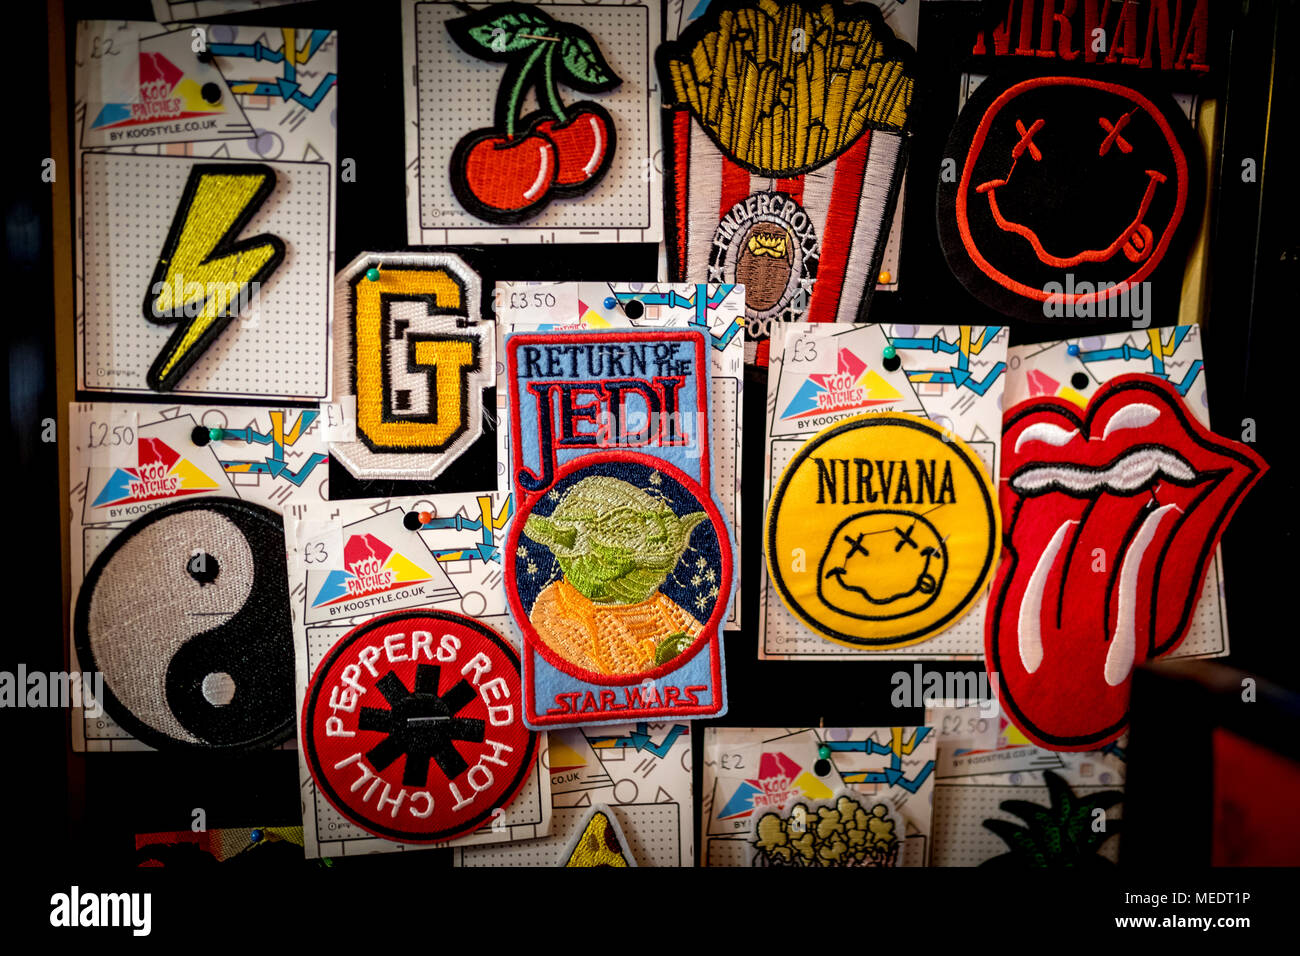 Embroidered vintage Metal Rock Punk Indie Music Band Sew Iron On Patches on display in the UK including, Red Hot Chili Peppers, Nirvana, Rolling Stone - Stock Image